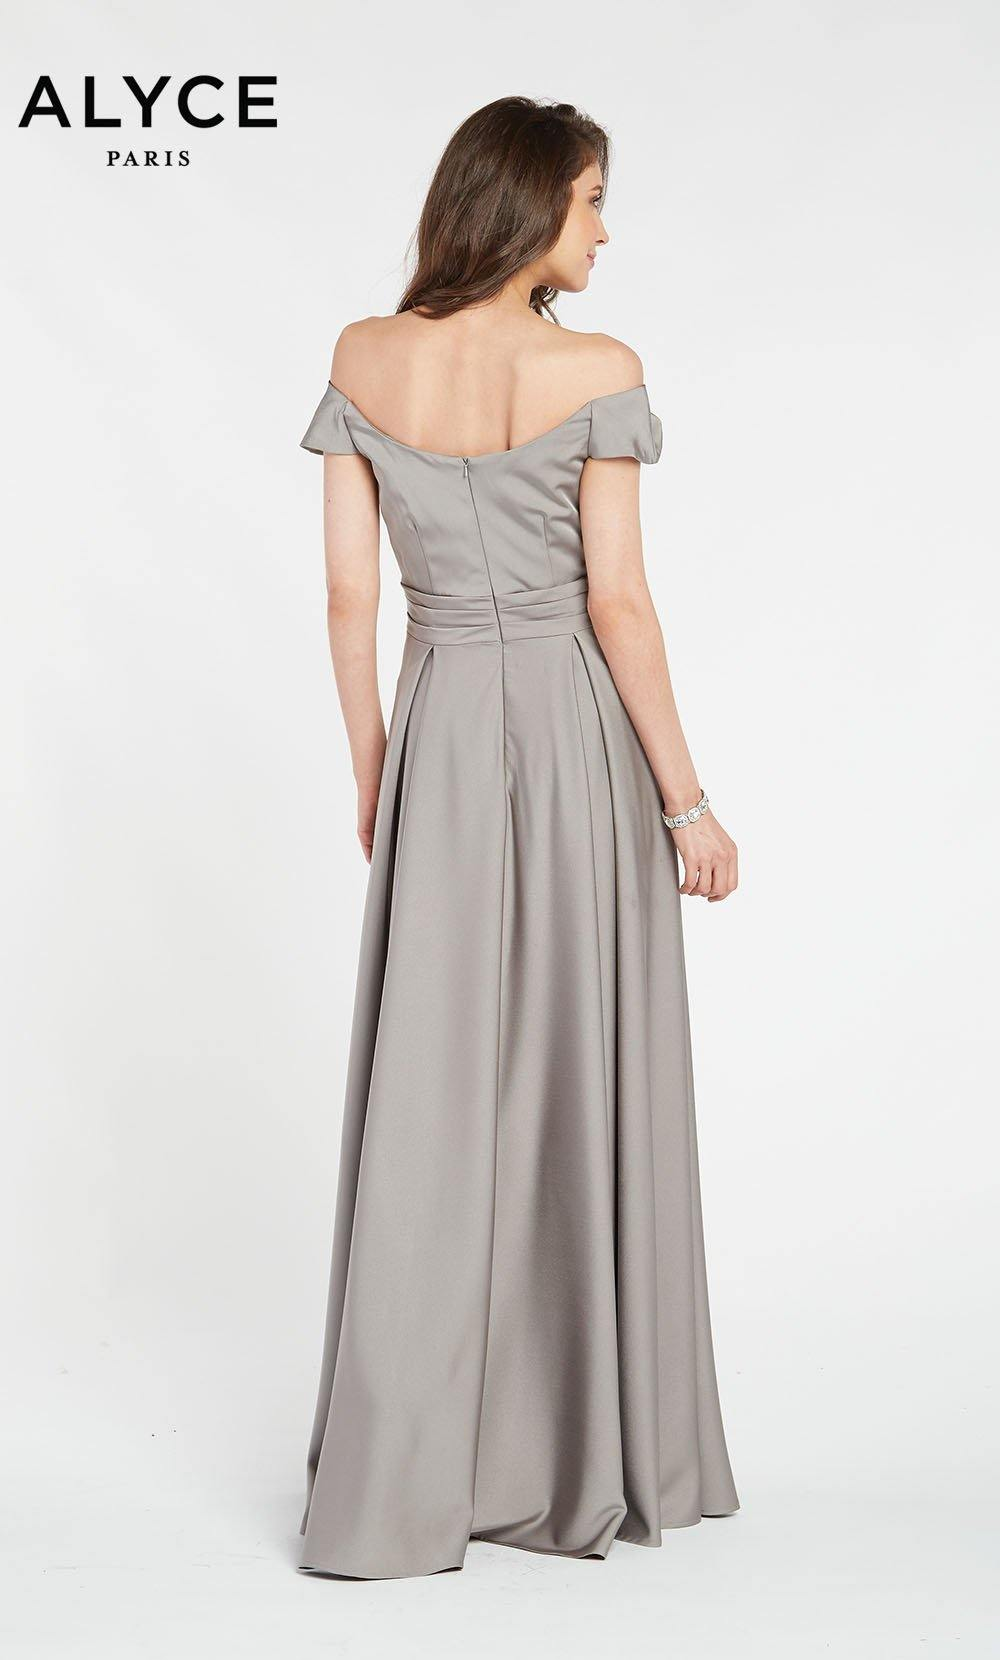 Alyce 27123 long gown with an off the shoulder capped sleeve